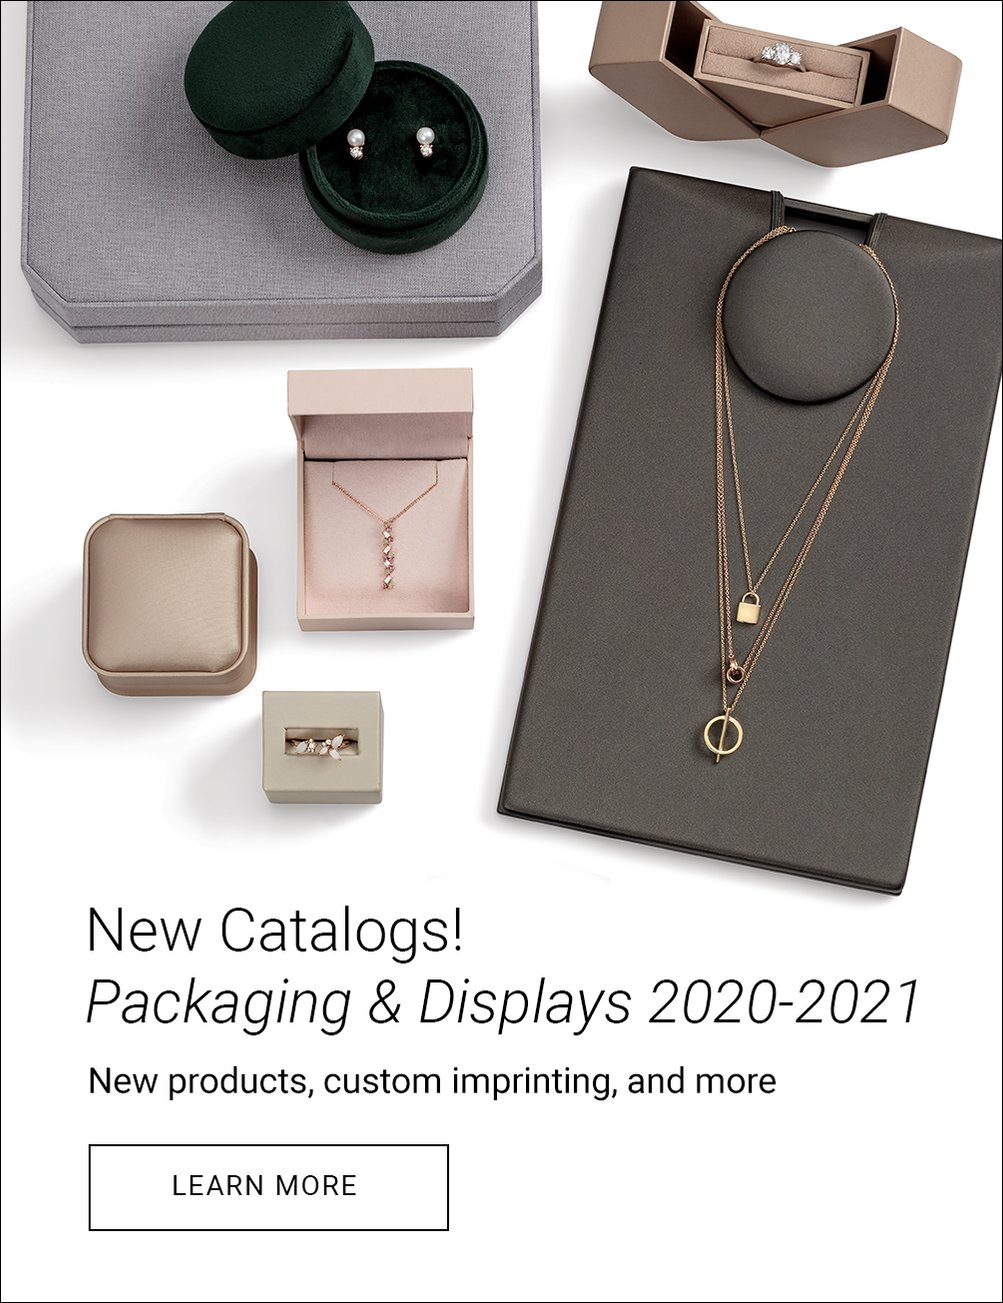 New Catalog! Packaging and Displays 2020-2021